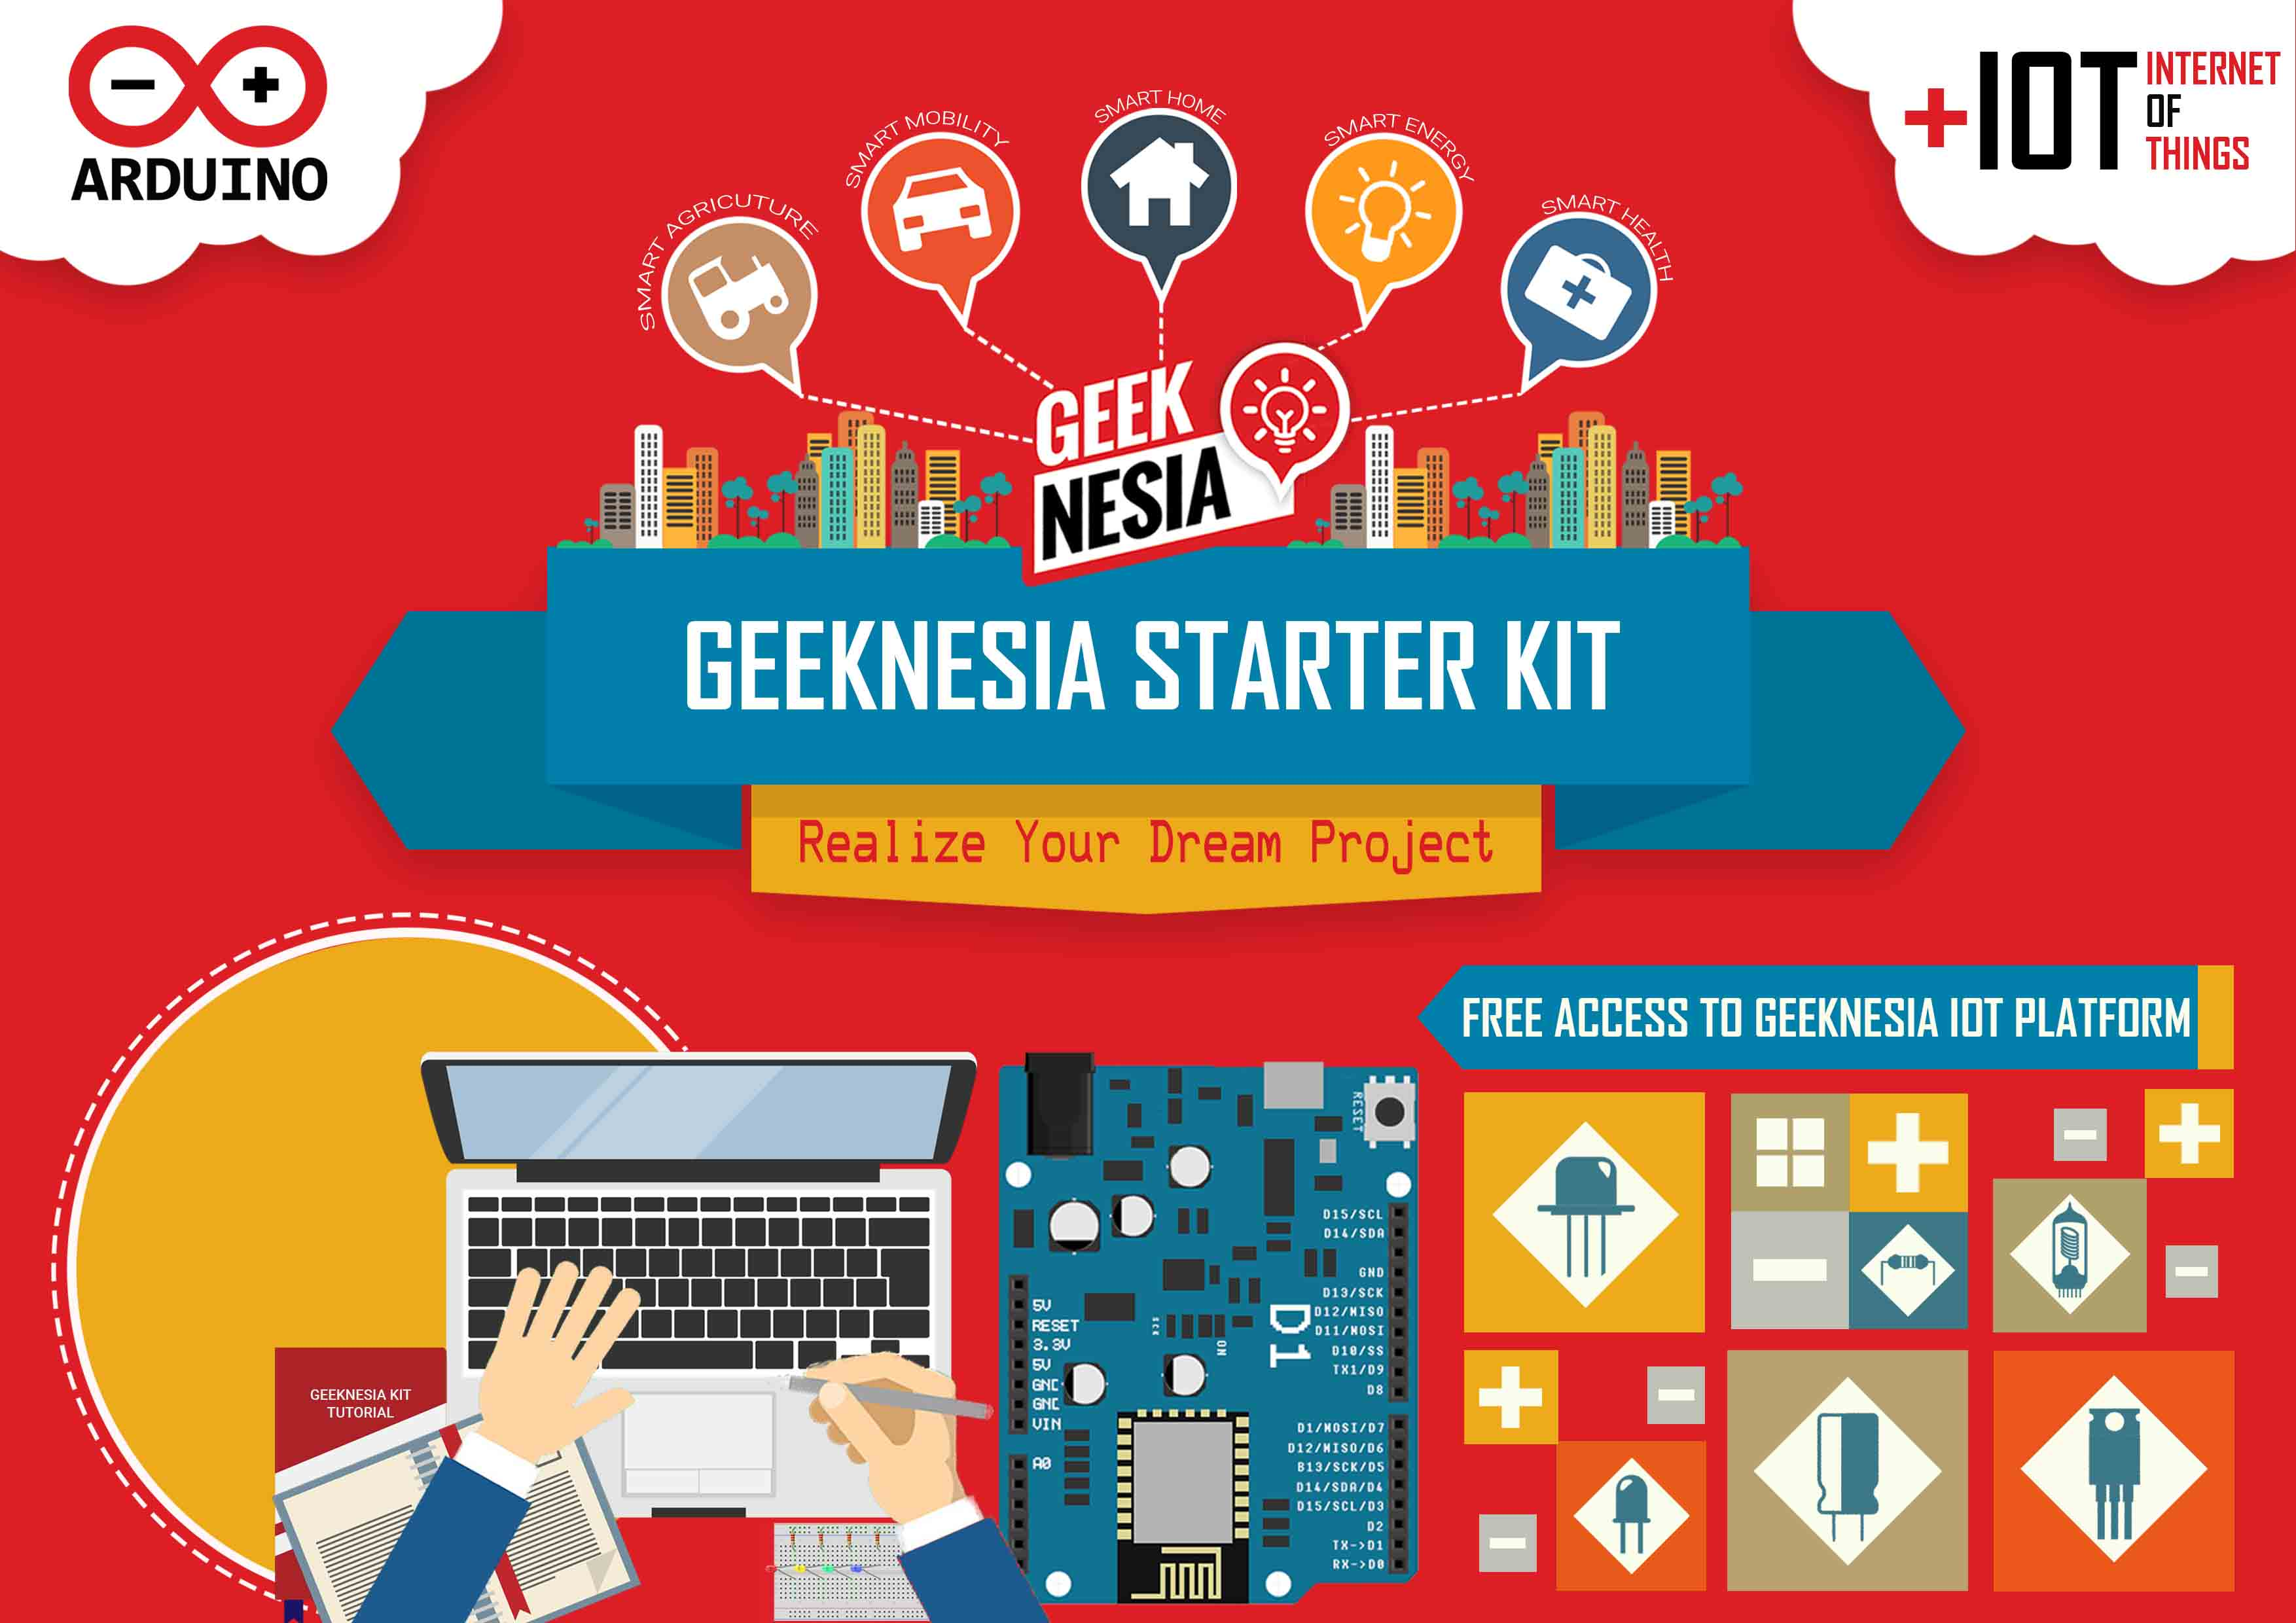 Geeknesia Kit